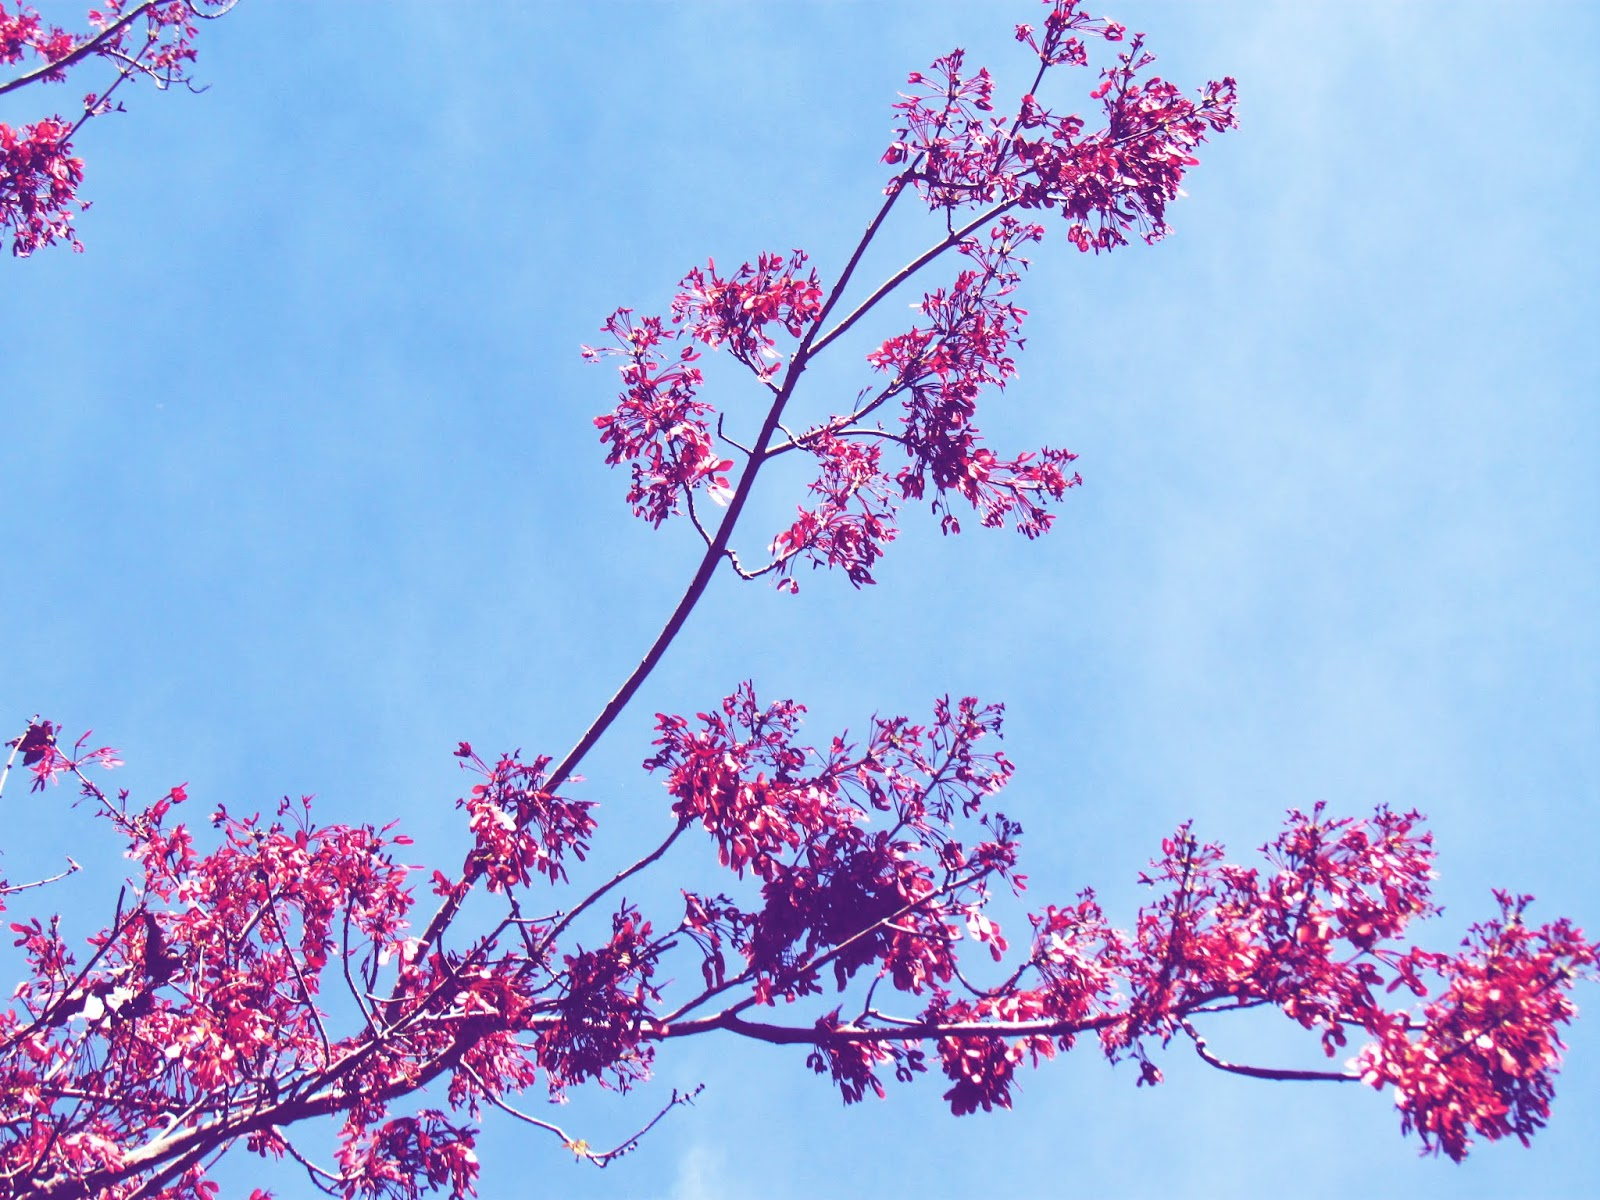 Spring Fever With Dreamy Red Flowery Trees and Bright Blue Skies